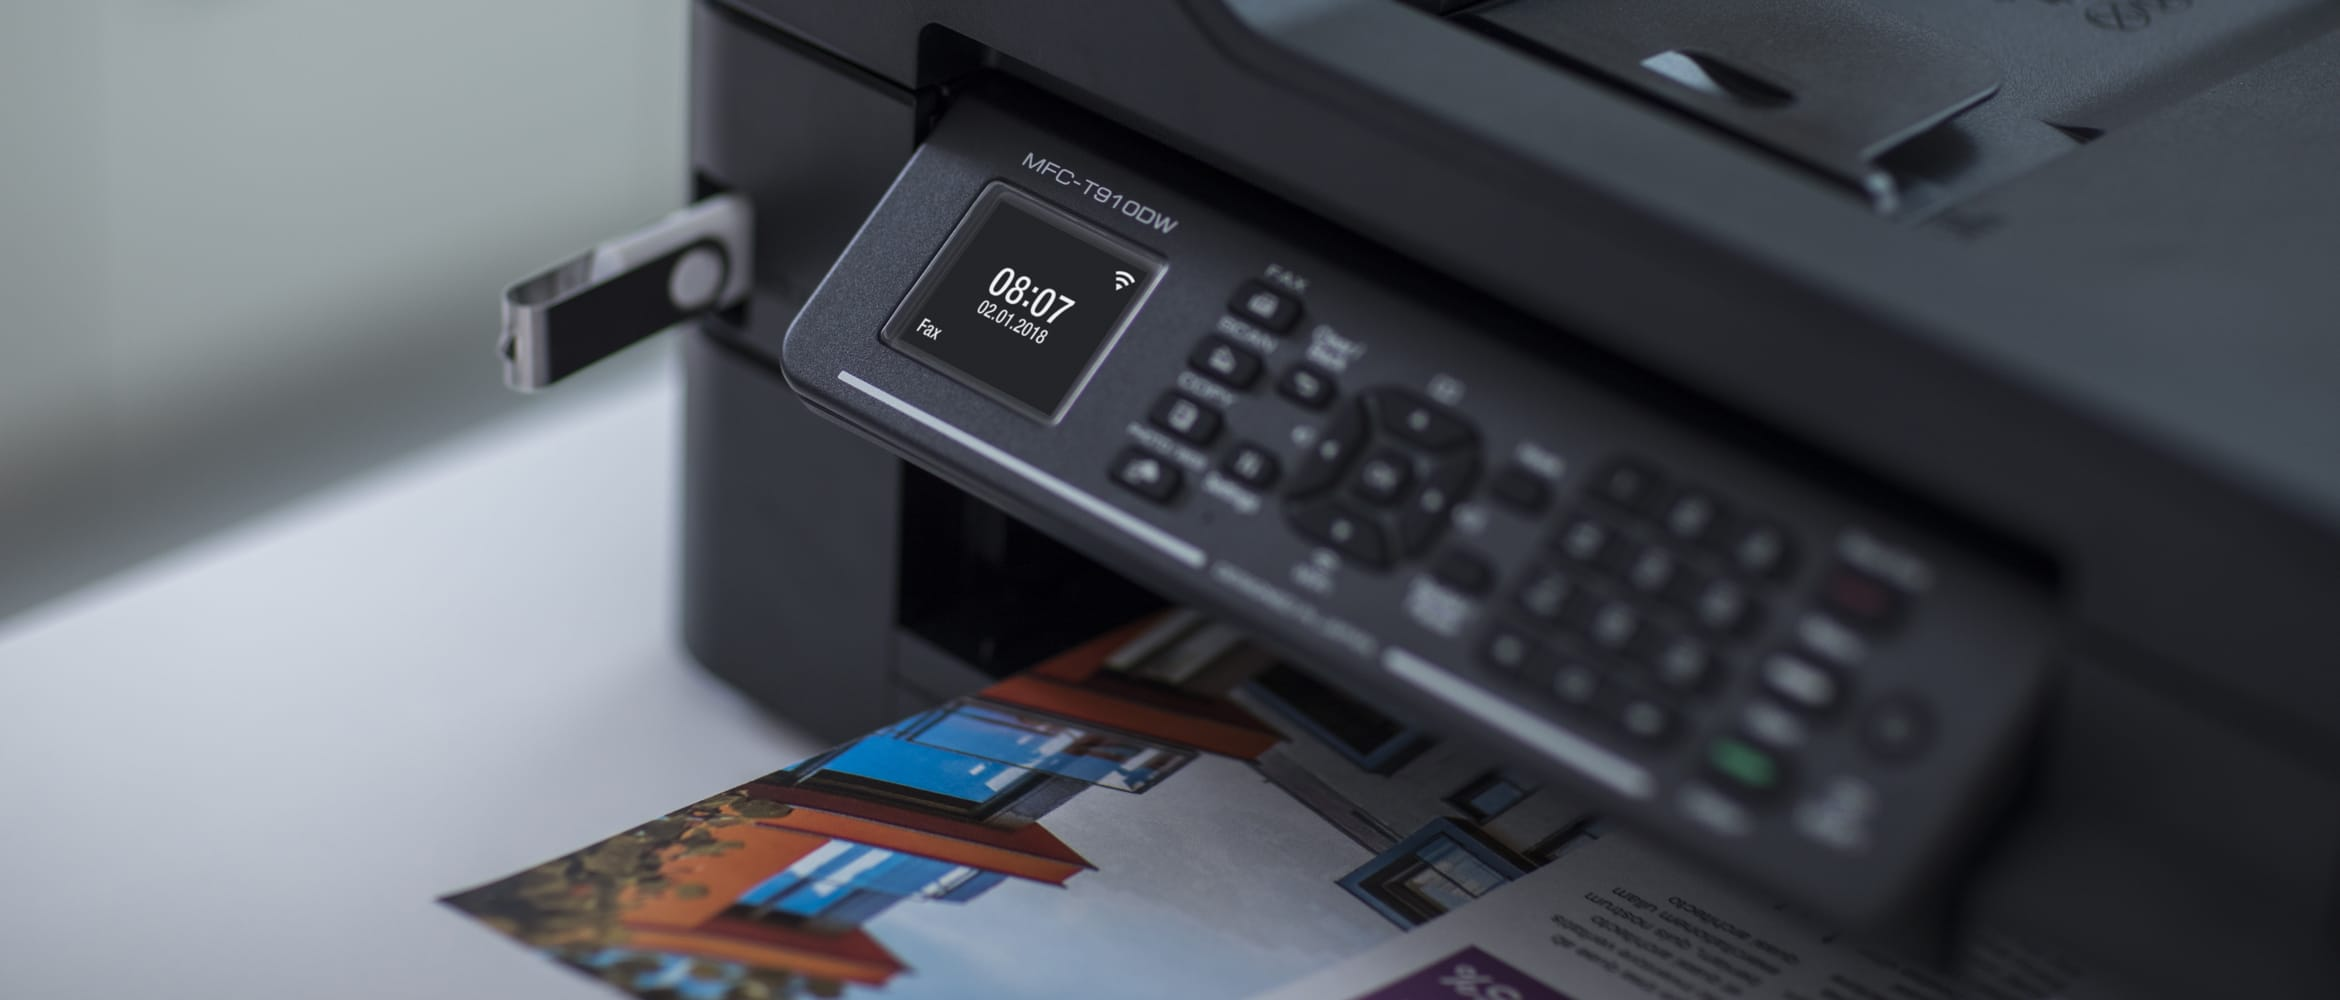 Best Printers for 2019 | Brother UK